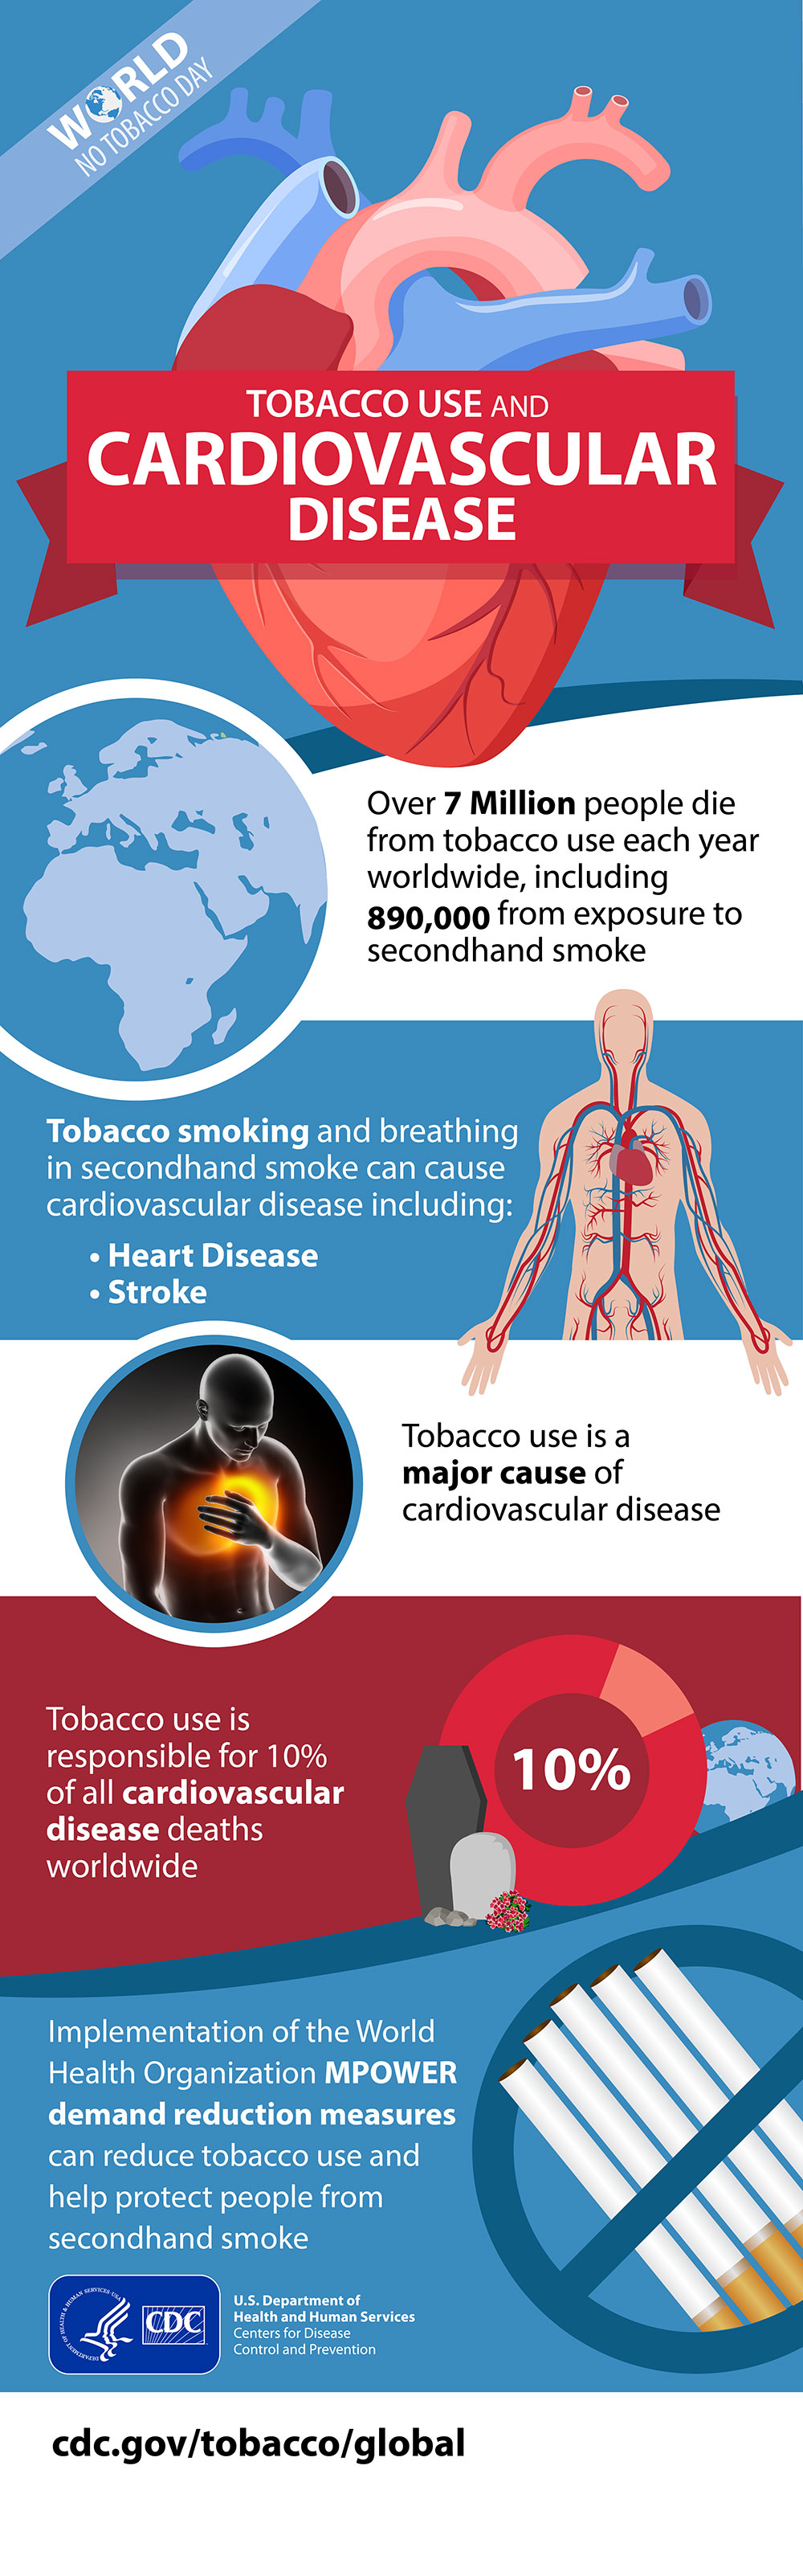 Tobacco Use and Cardiovascular Disease